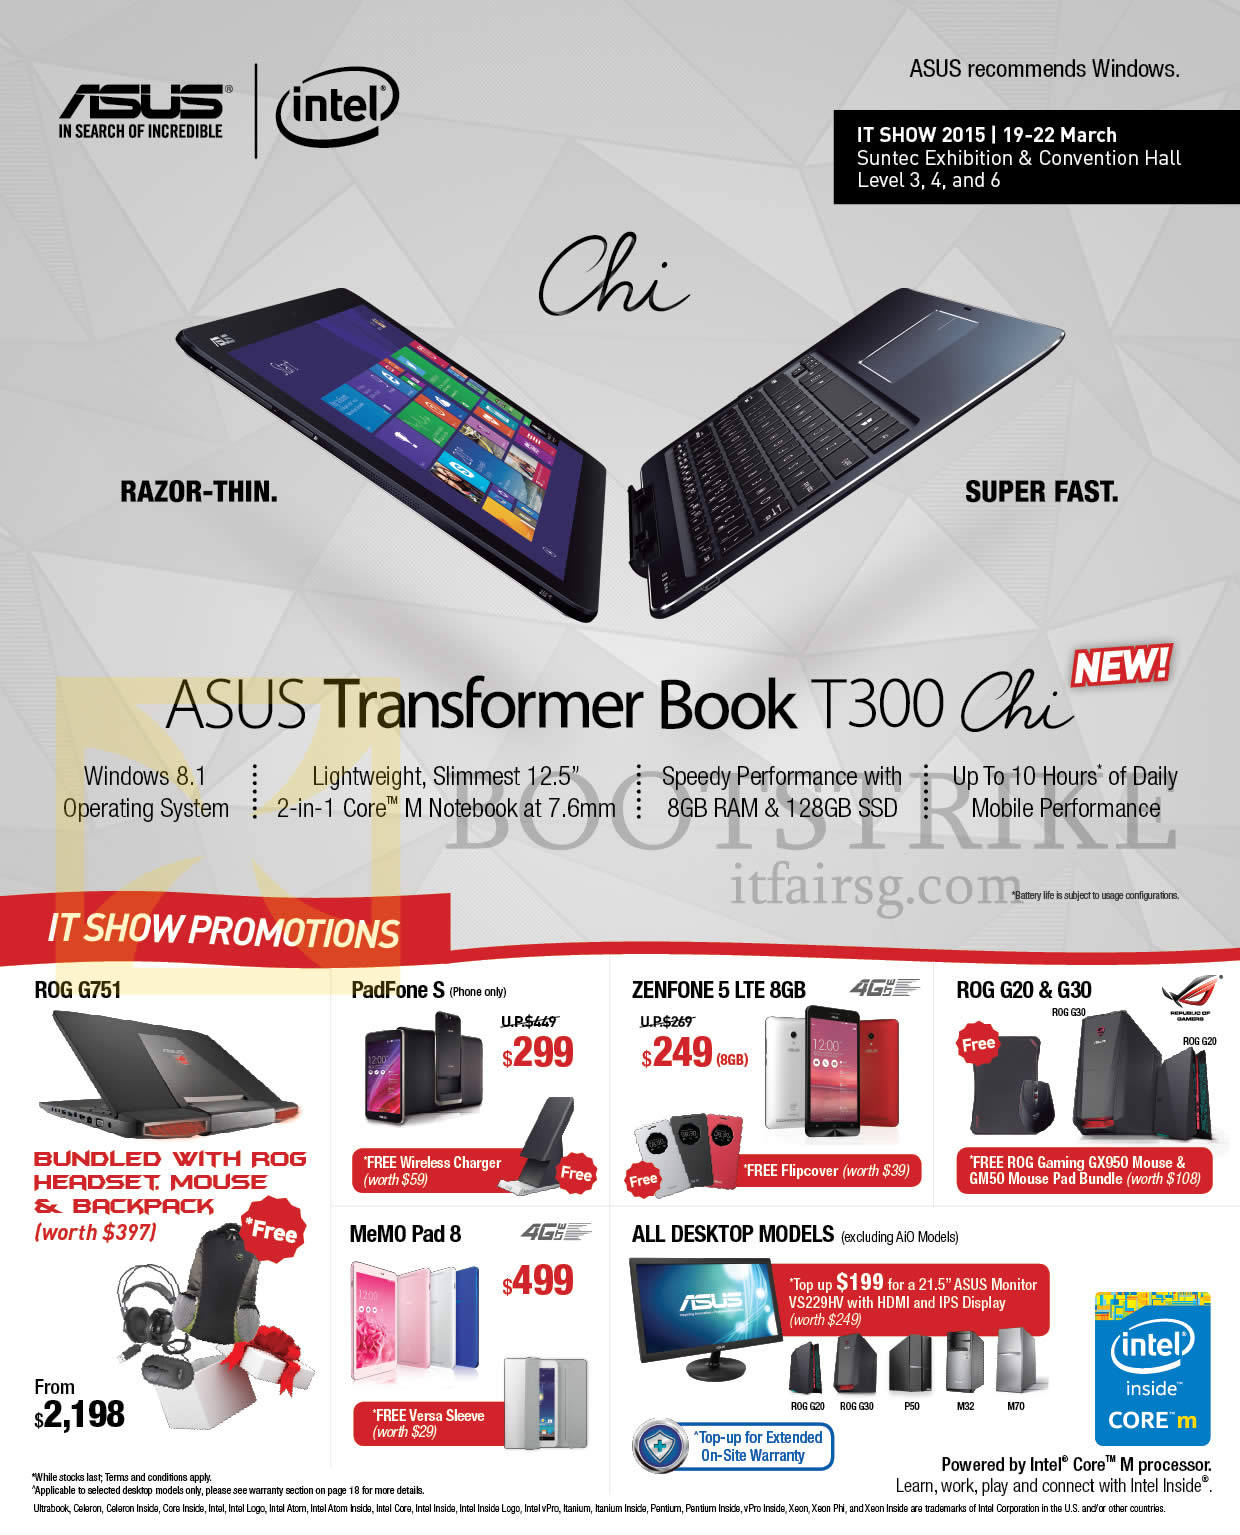 IT SHOW 2015 price list image brochure of ASUS Notebooks, Mobile Phones, Tablets, Desktop PCs